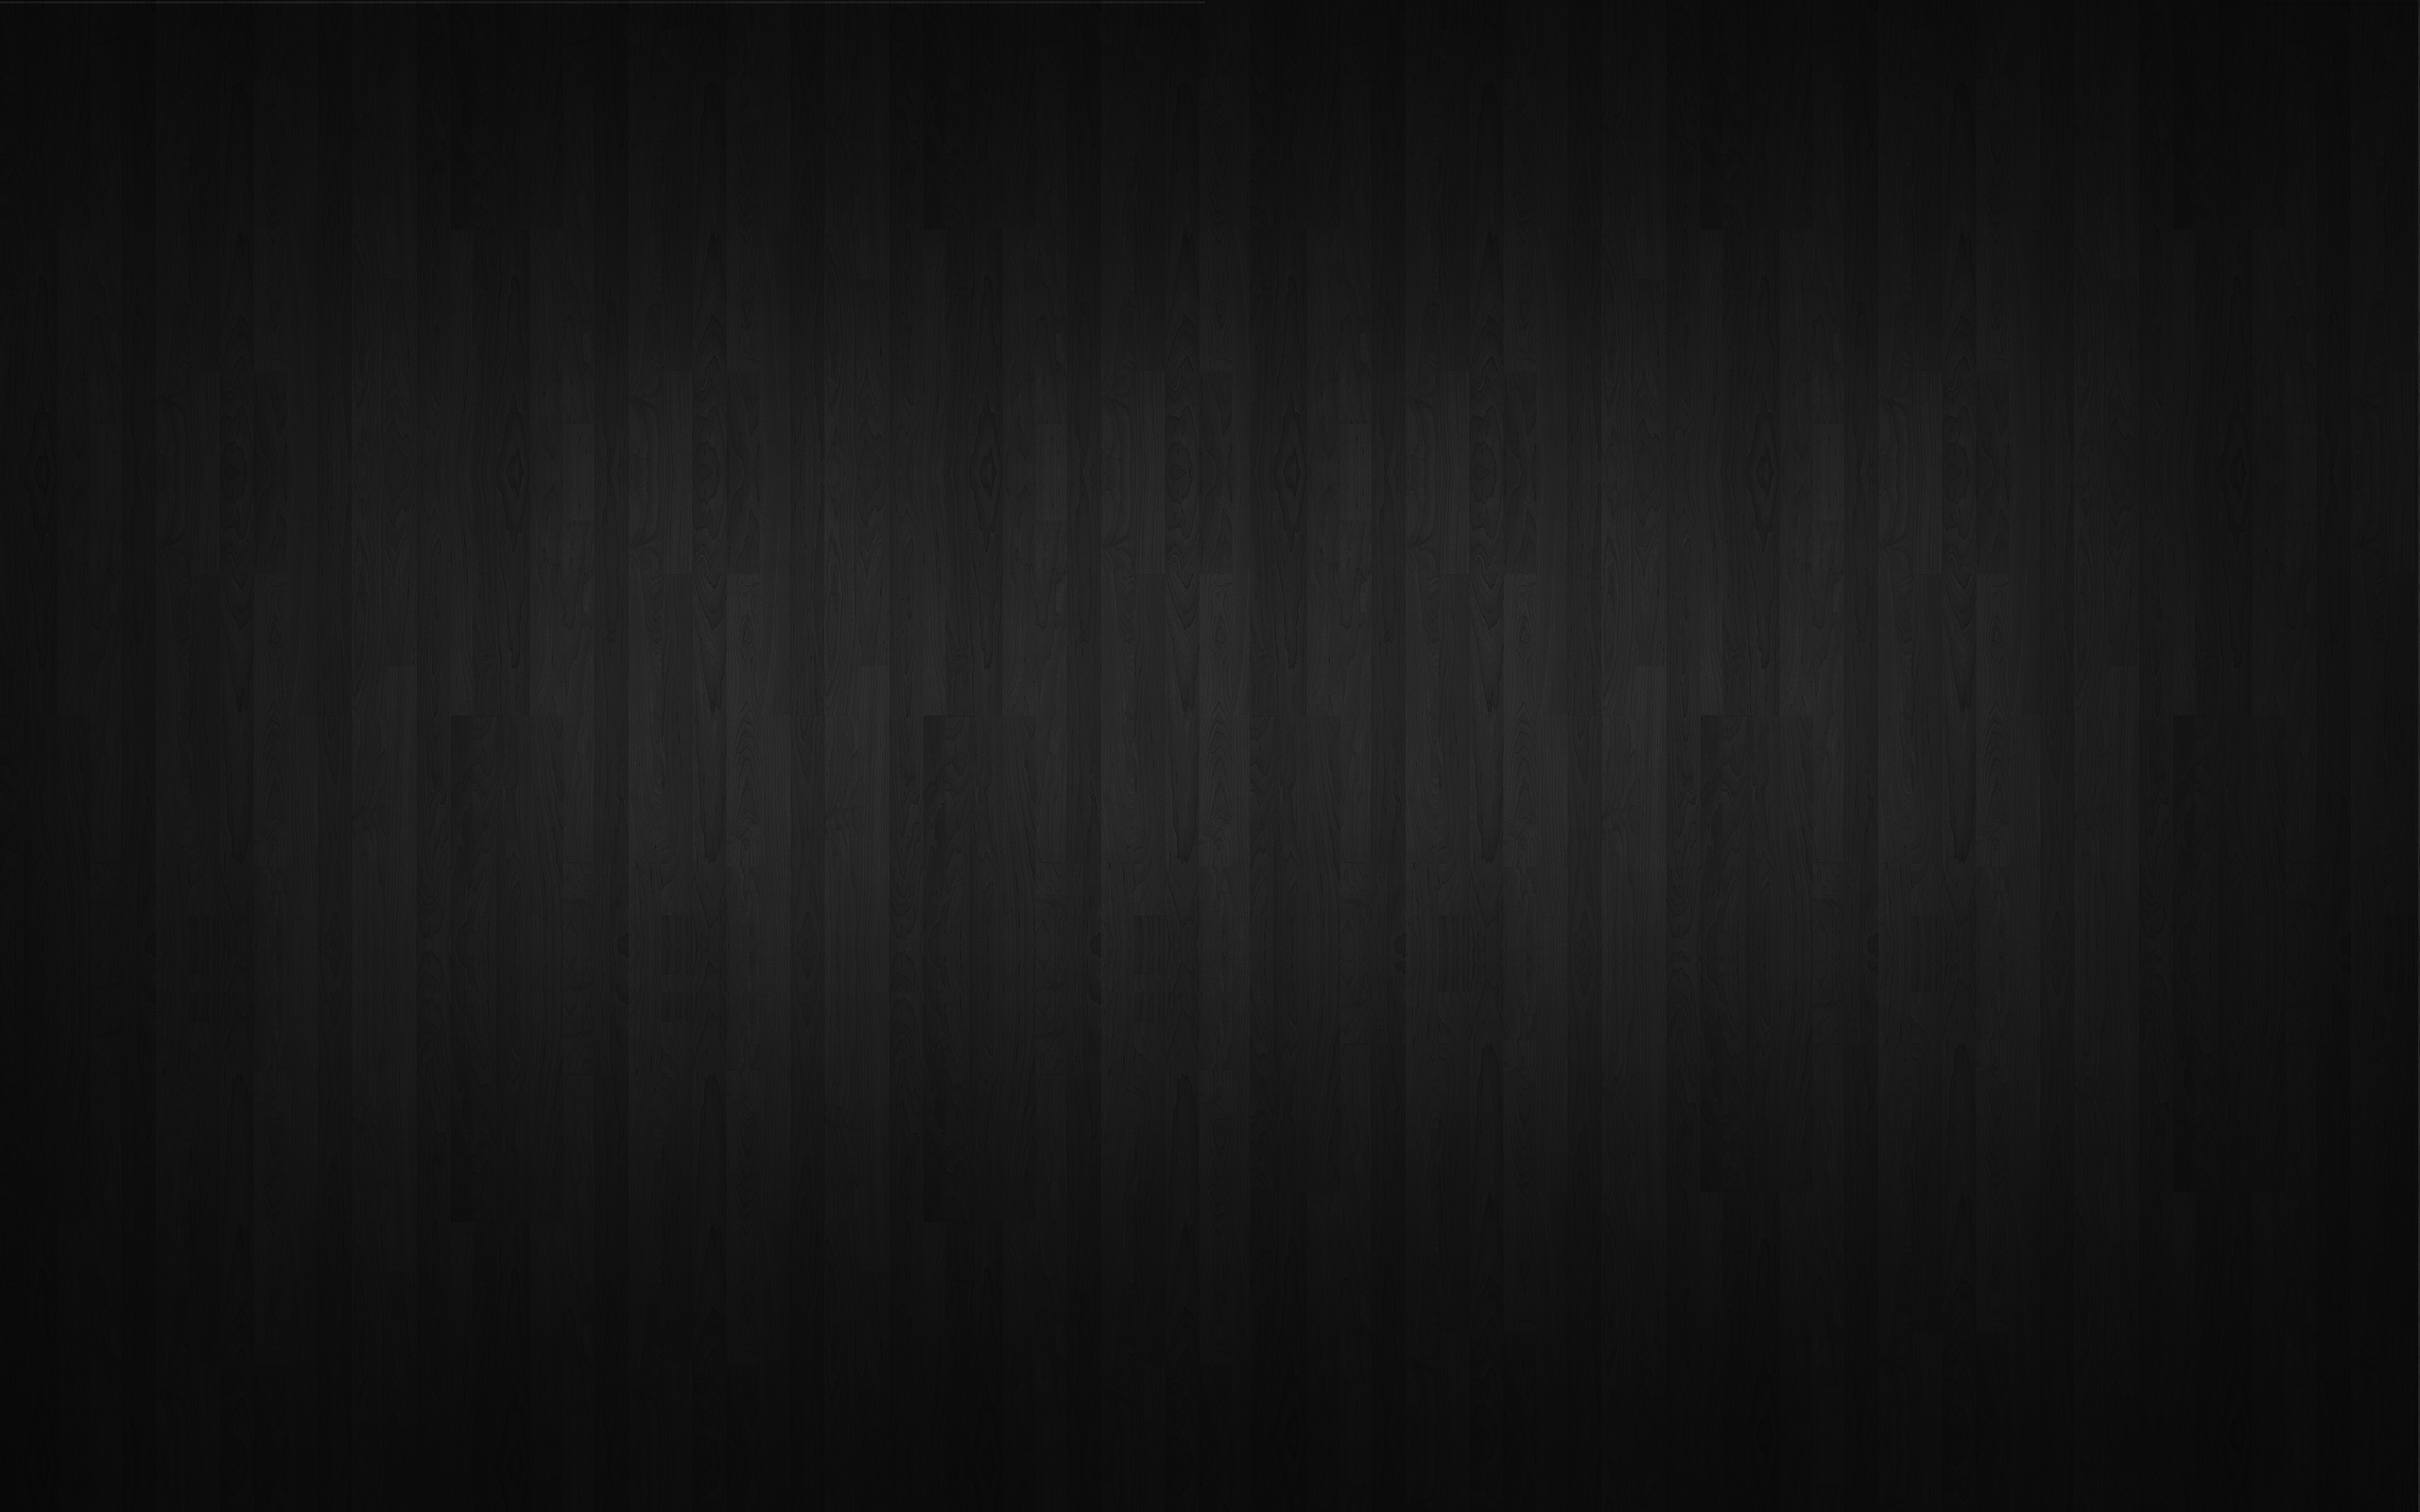 Black wallpapers best wallpapers for Black wallpaper full hd